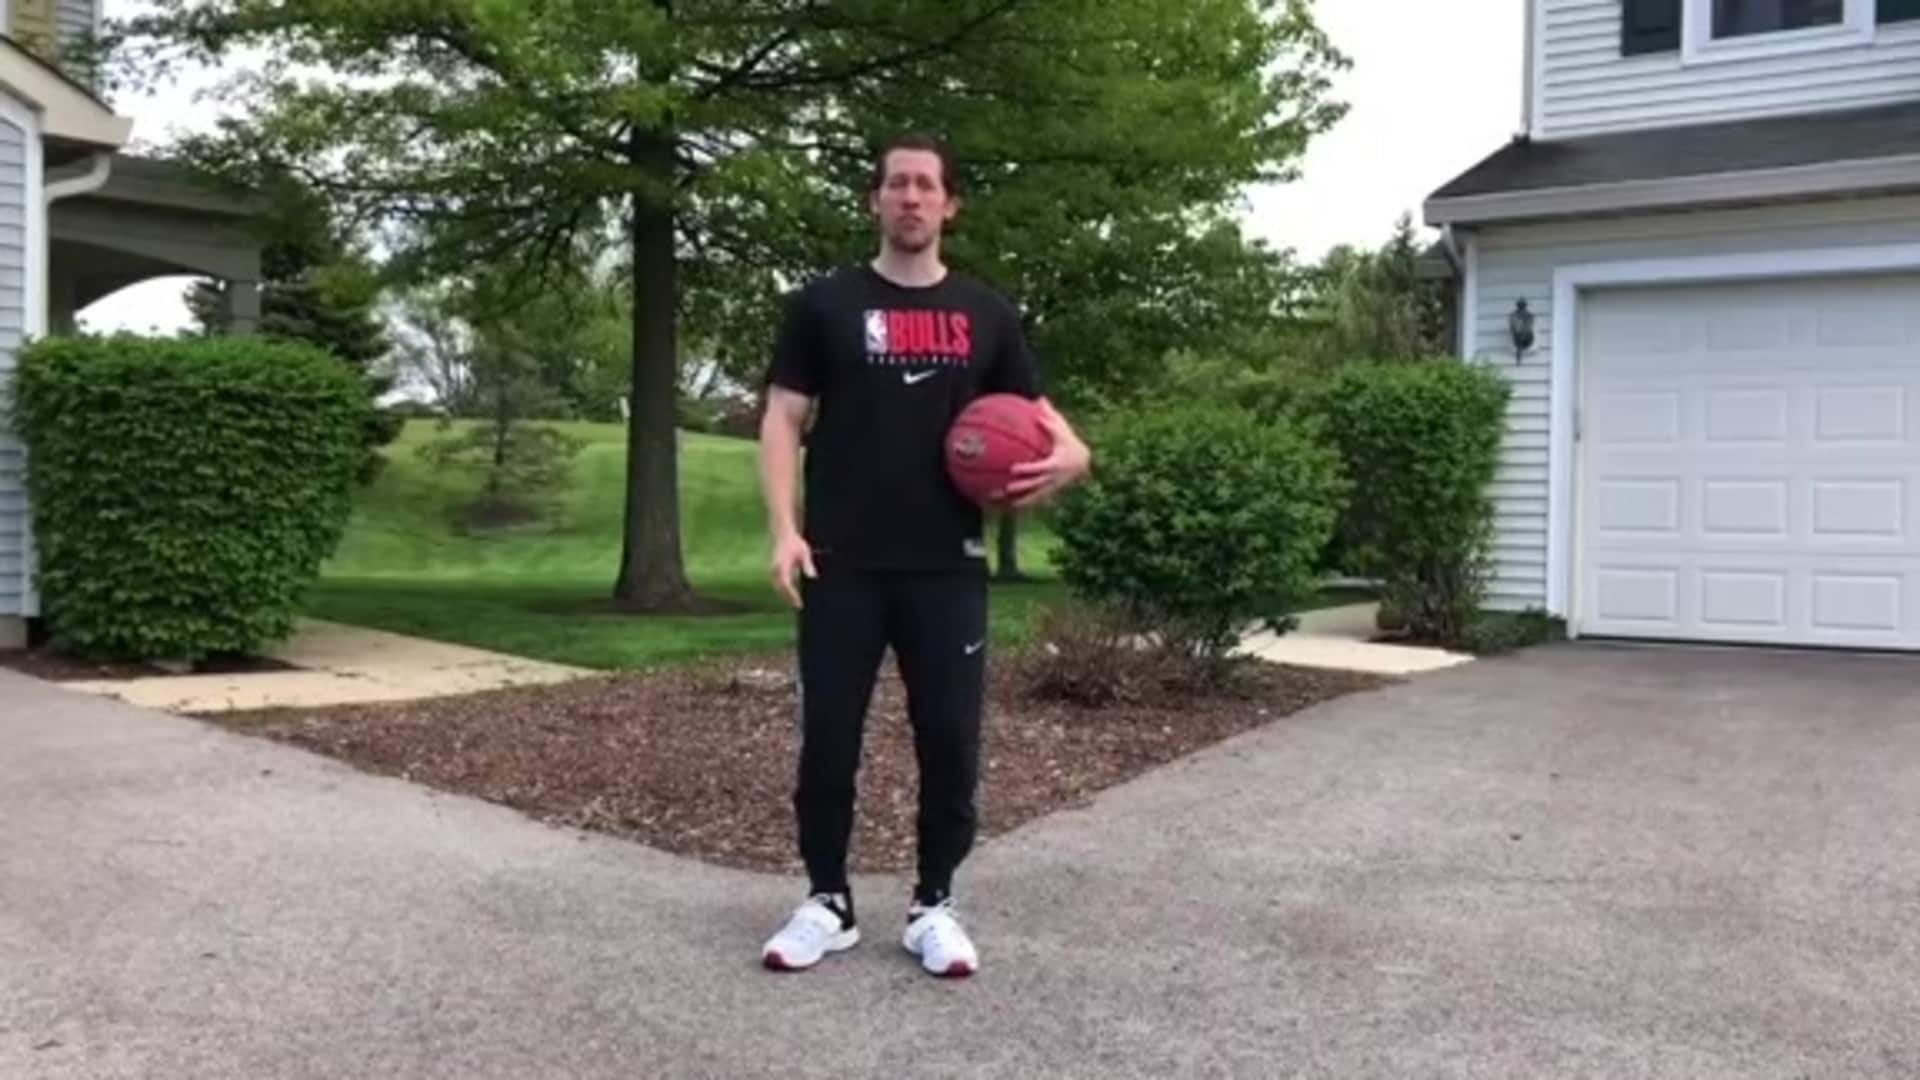 Youth Hoops Basketball Skills At Home: No Basket Shooting Workout